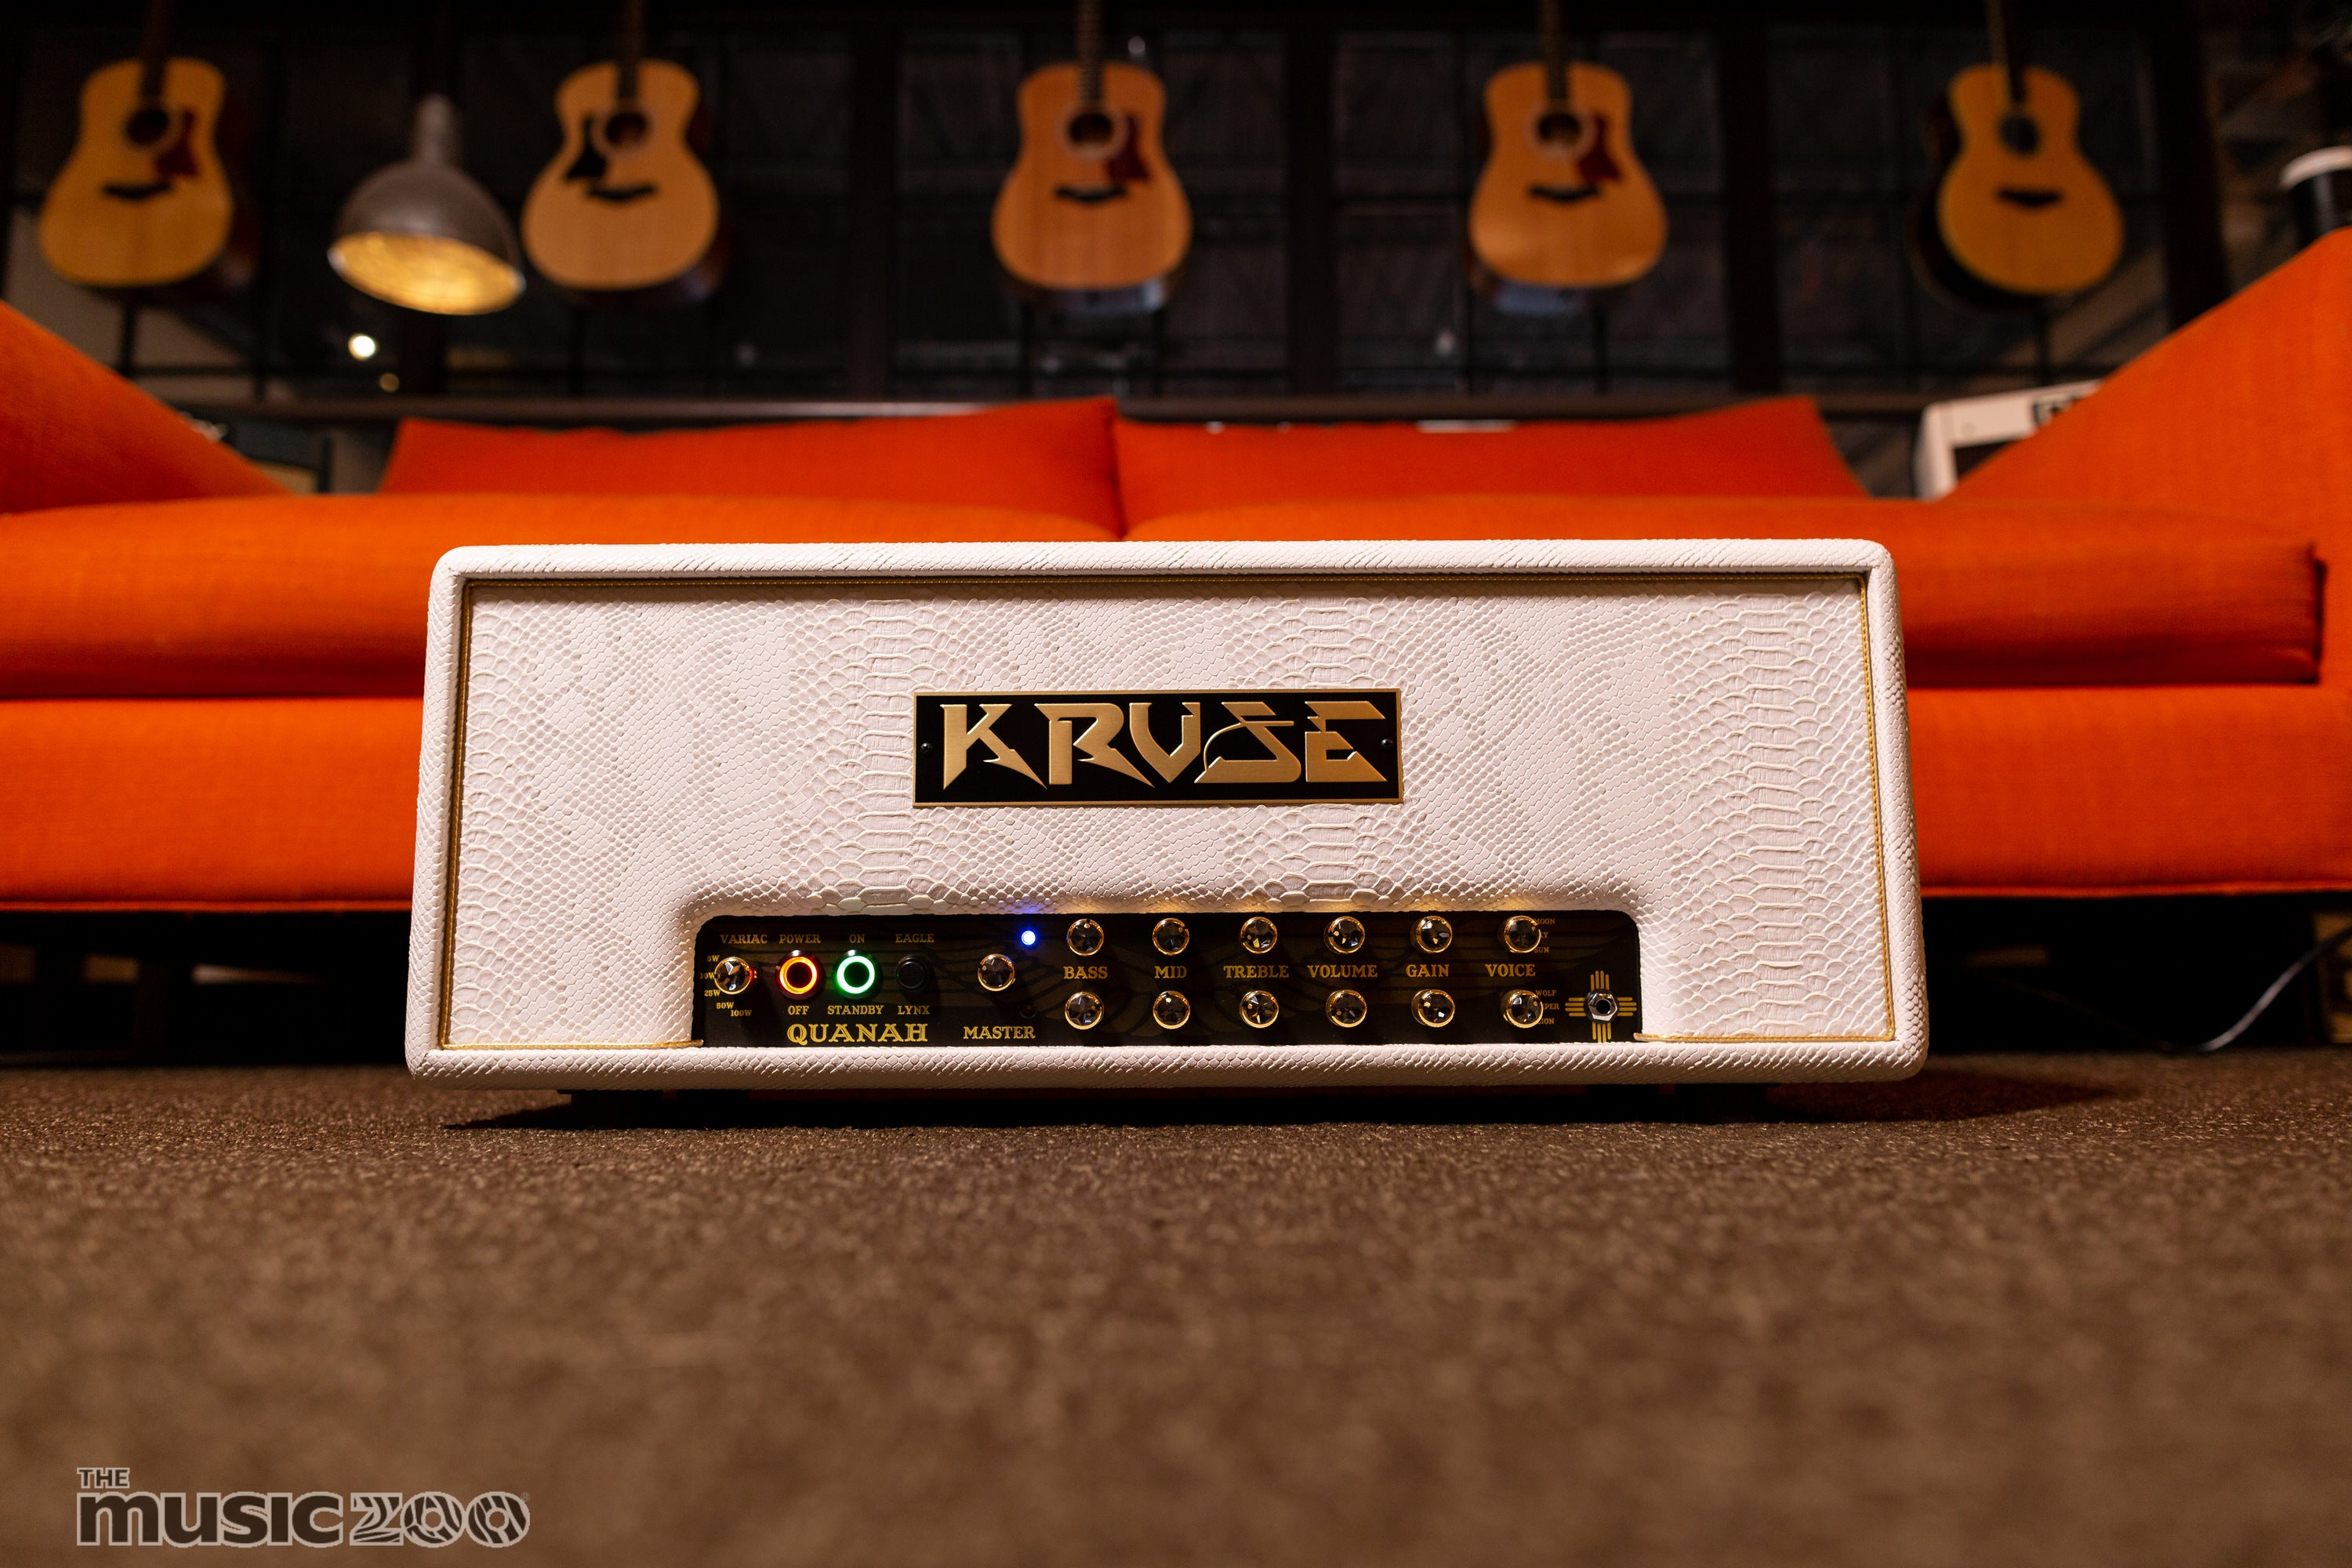 The Music Zoo is an Authorized Kruse Kontrol Amplification